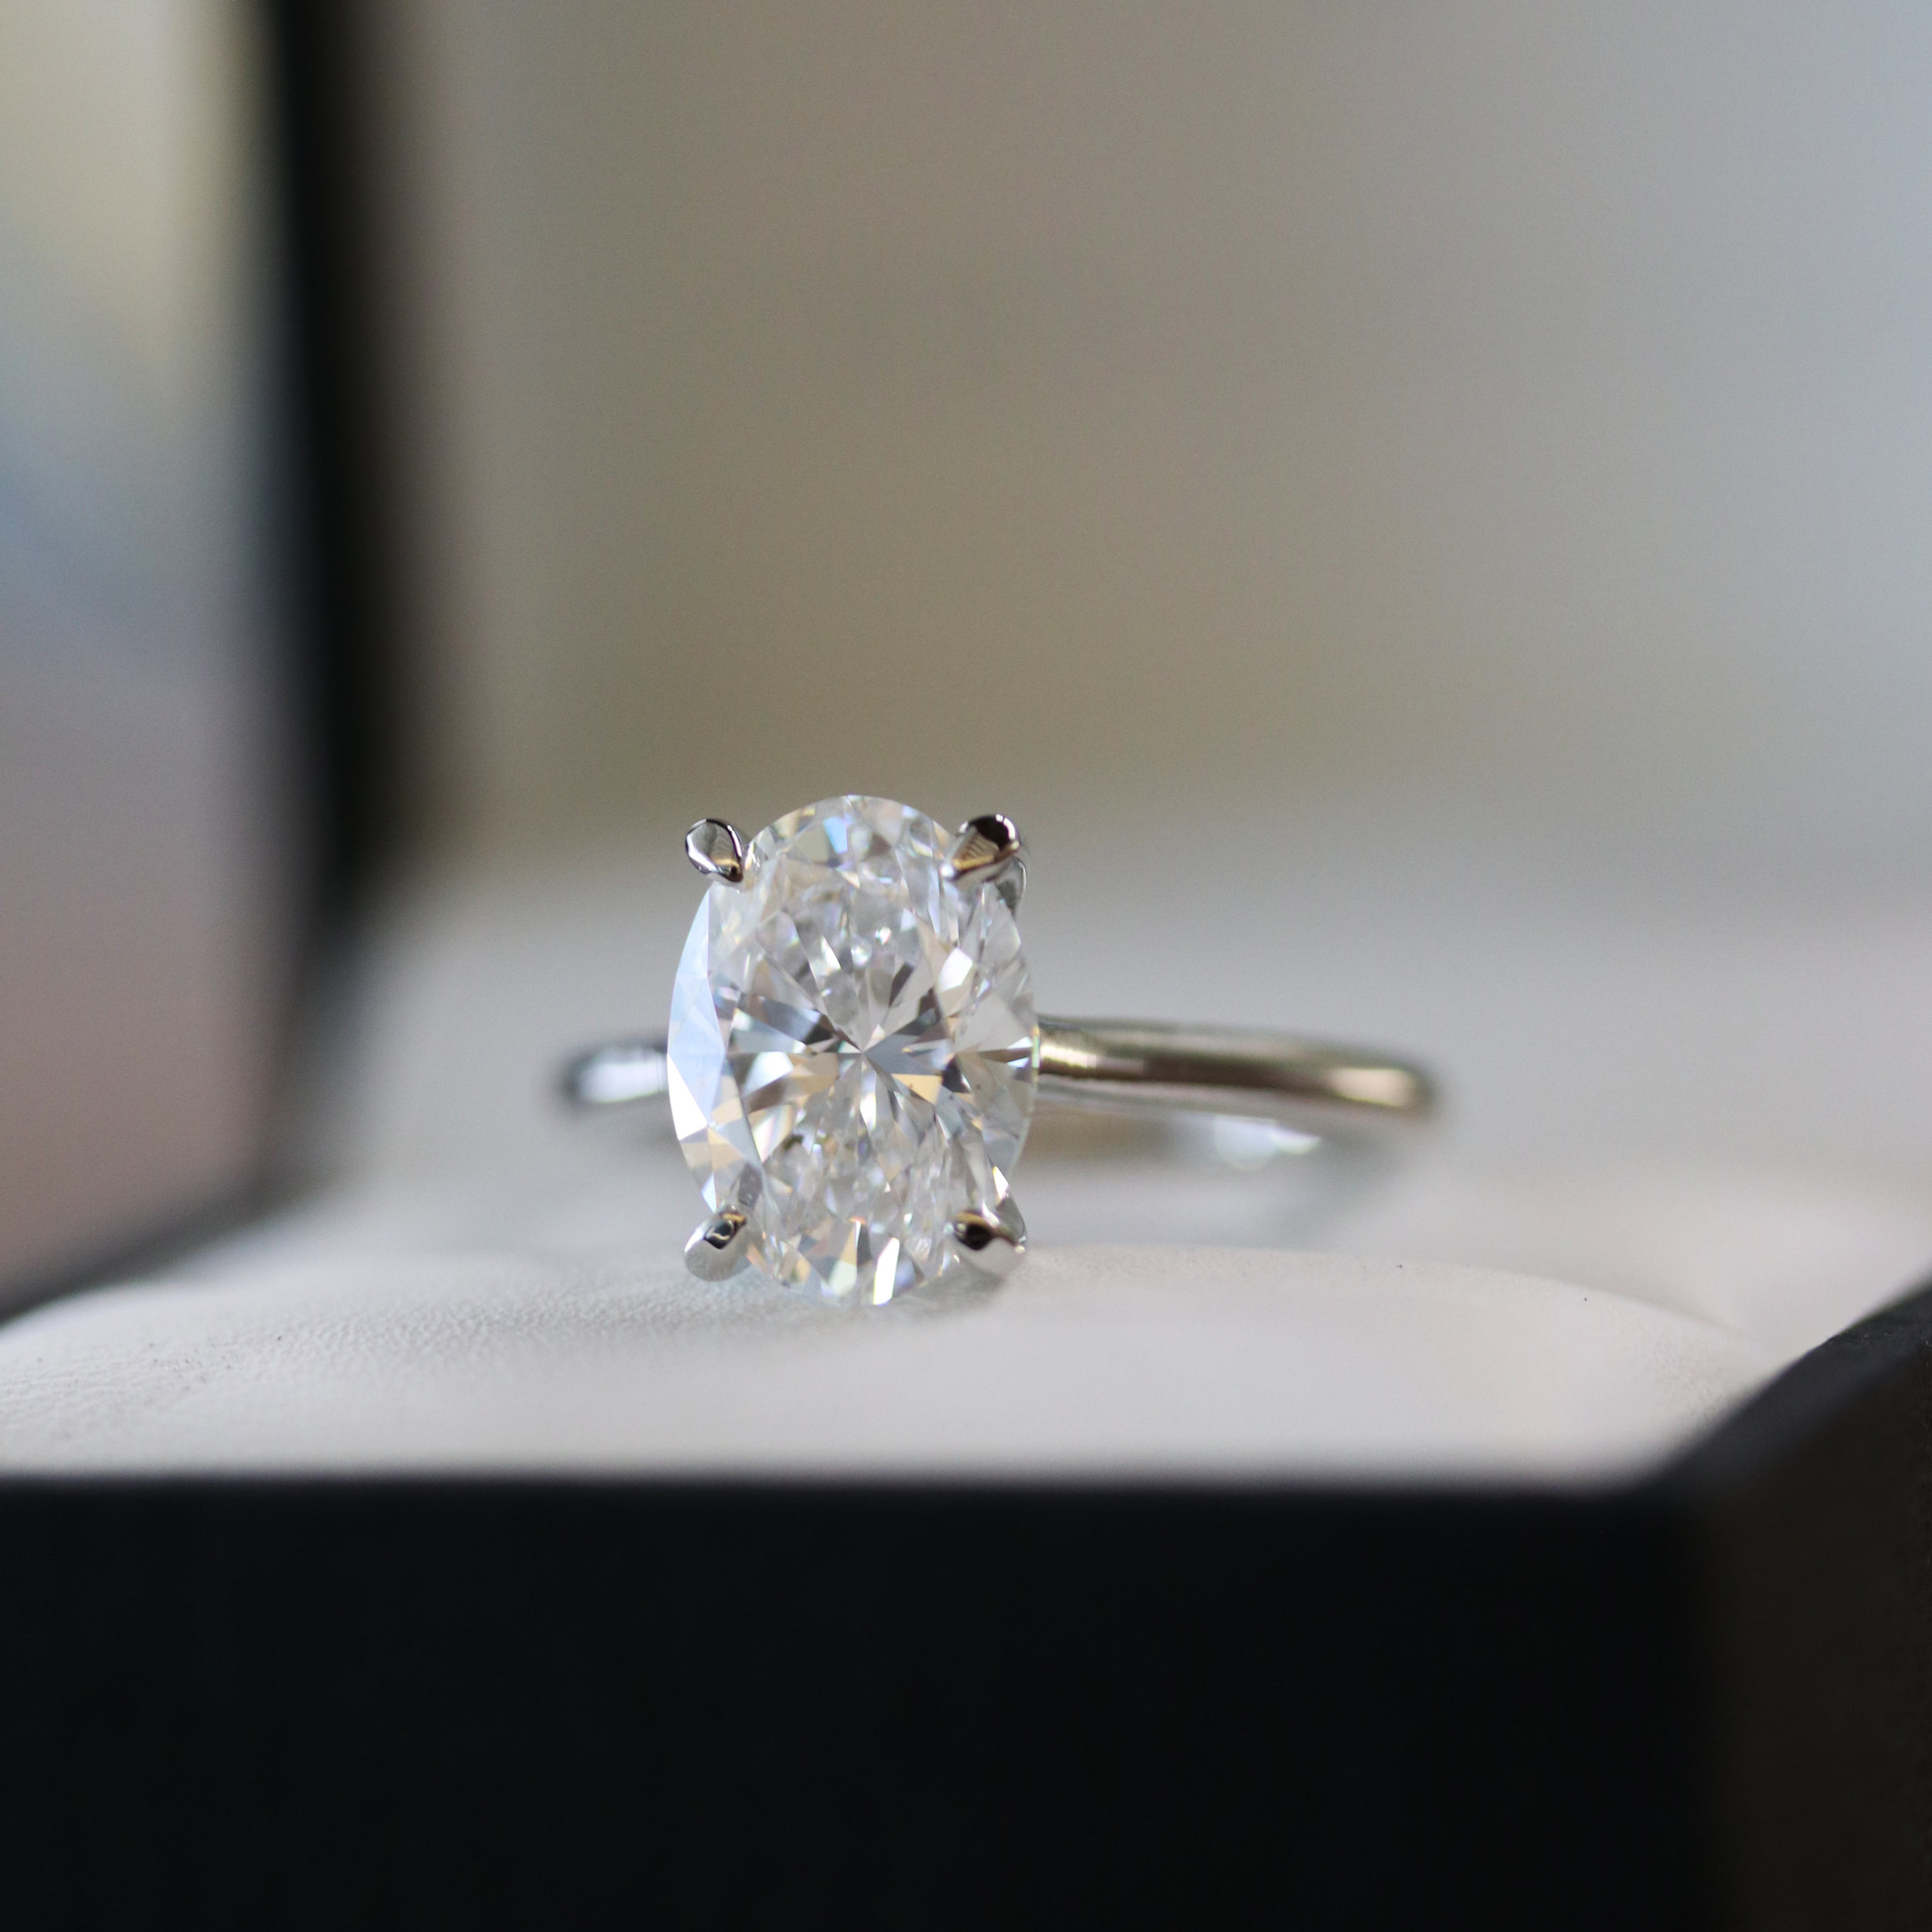 Oval diamond solitaire engagement ring in four prong platinum setting